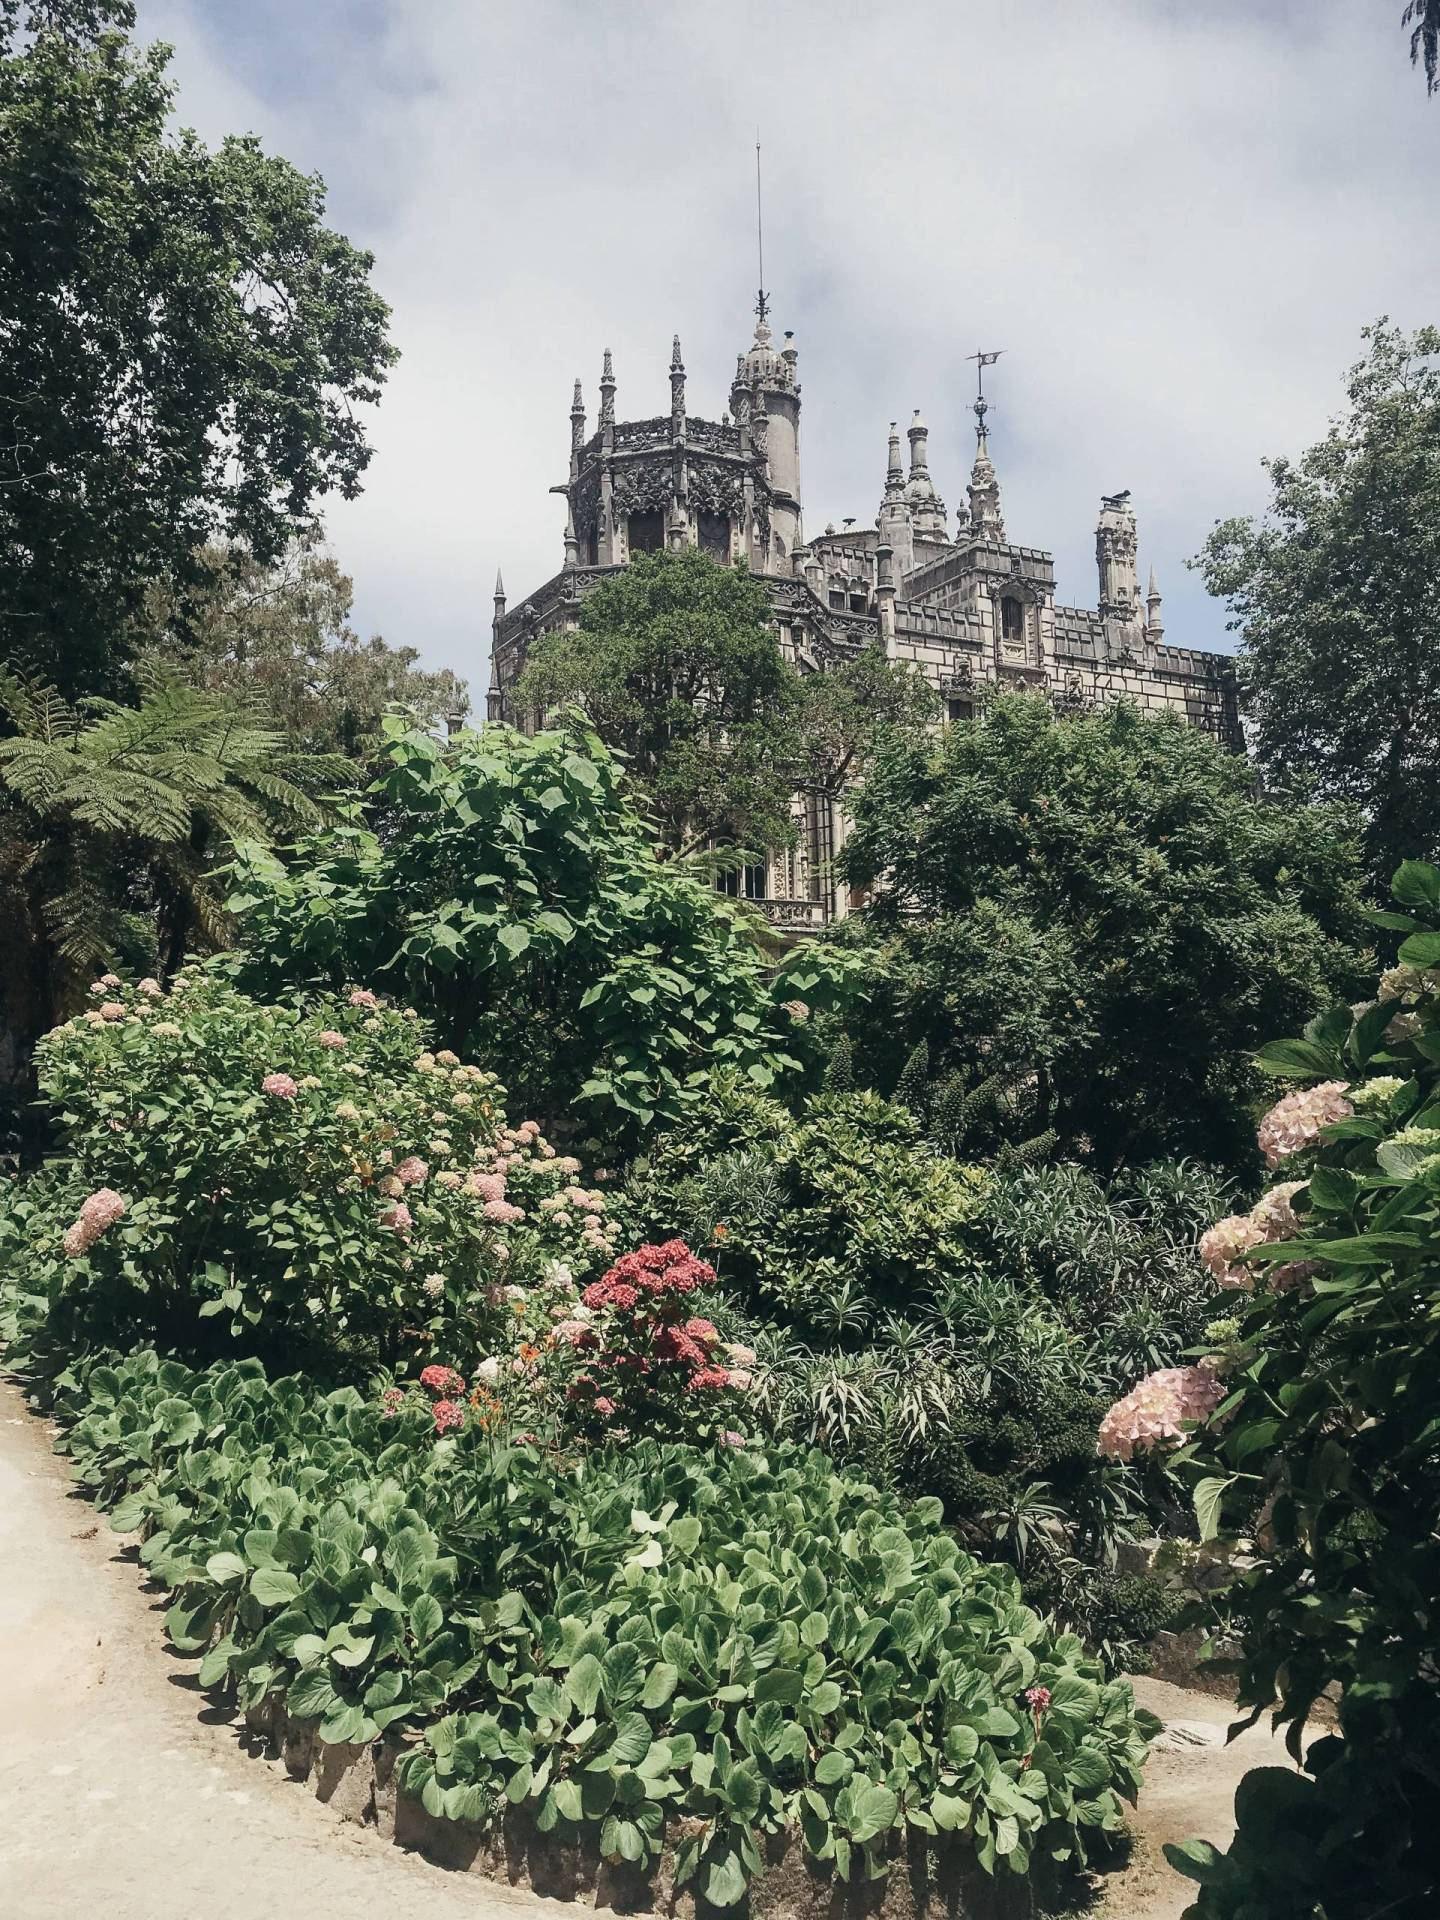 Tips for visiting Quinta da Regaleira in Sintra, Portugal